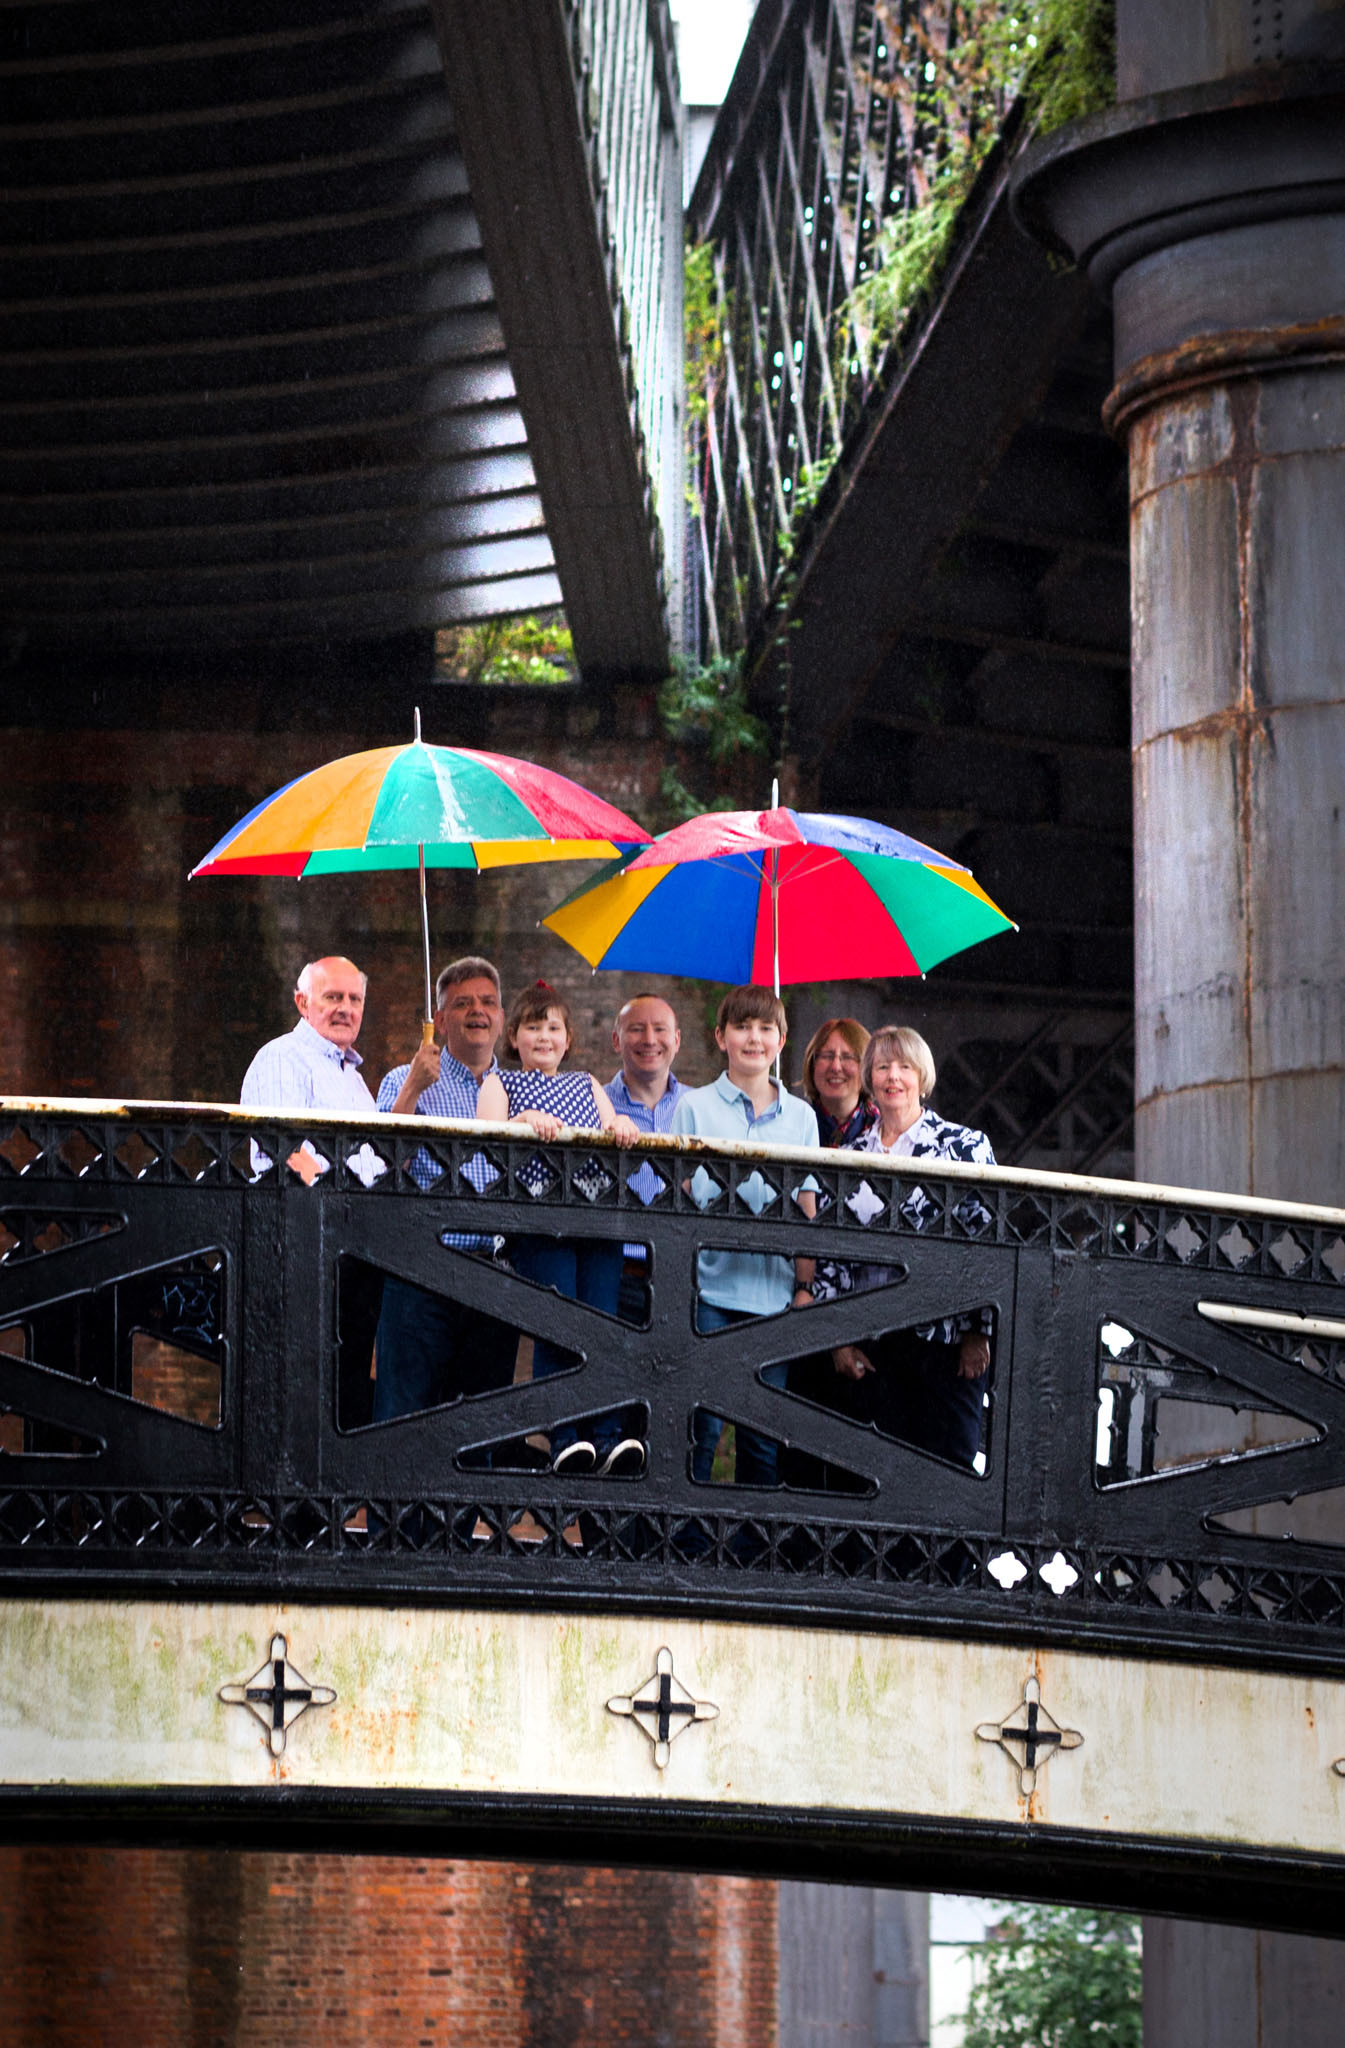 Lifestyle family portrait photography of a family group in the rain in Castlefield, Manchester